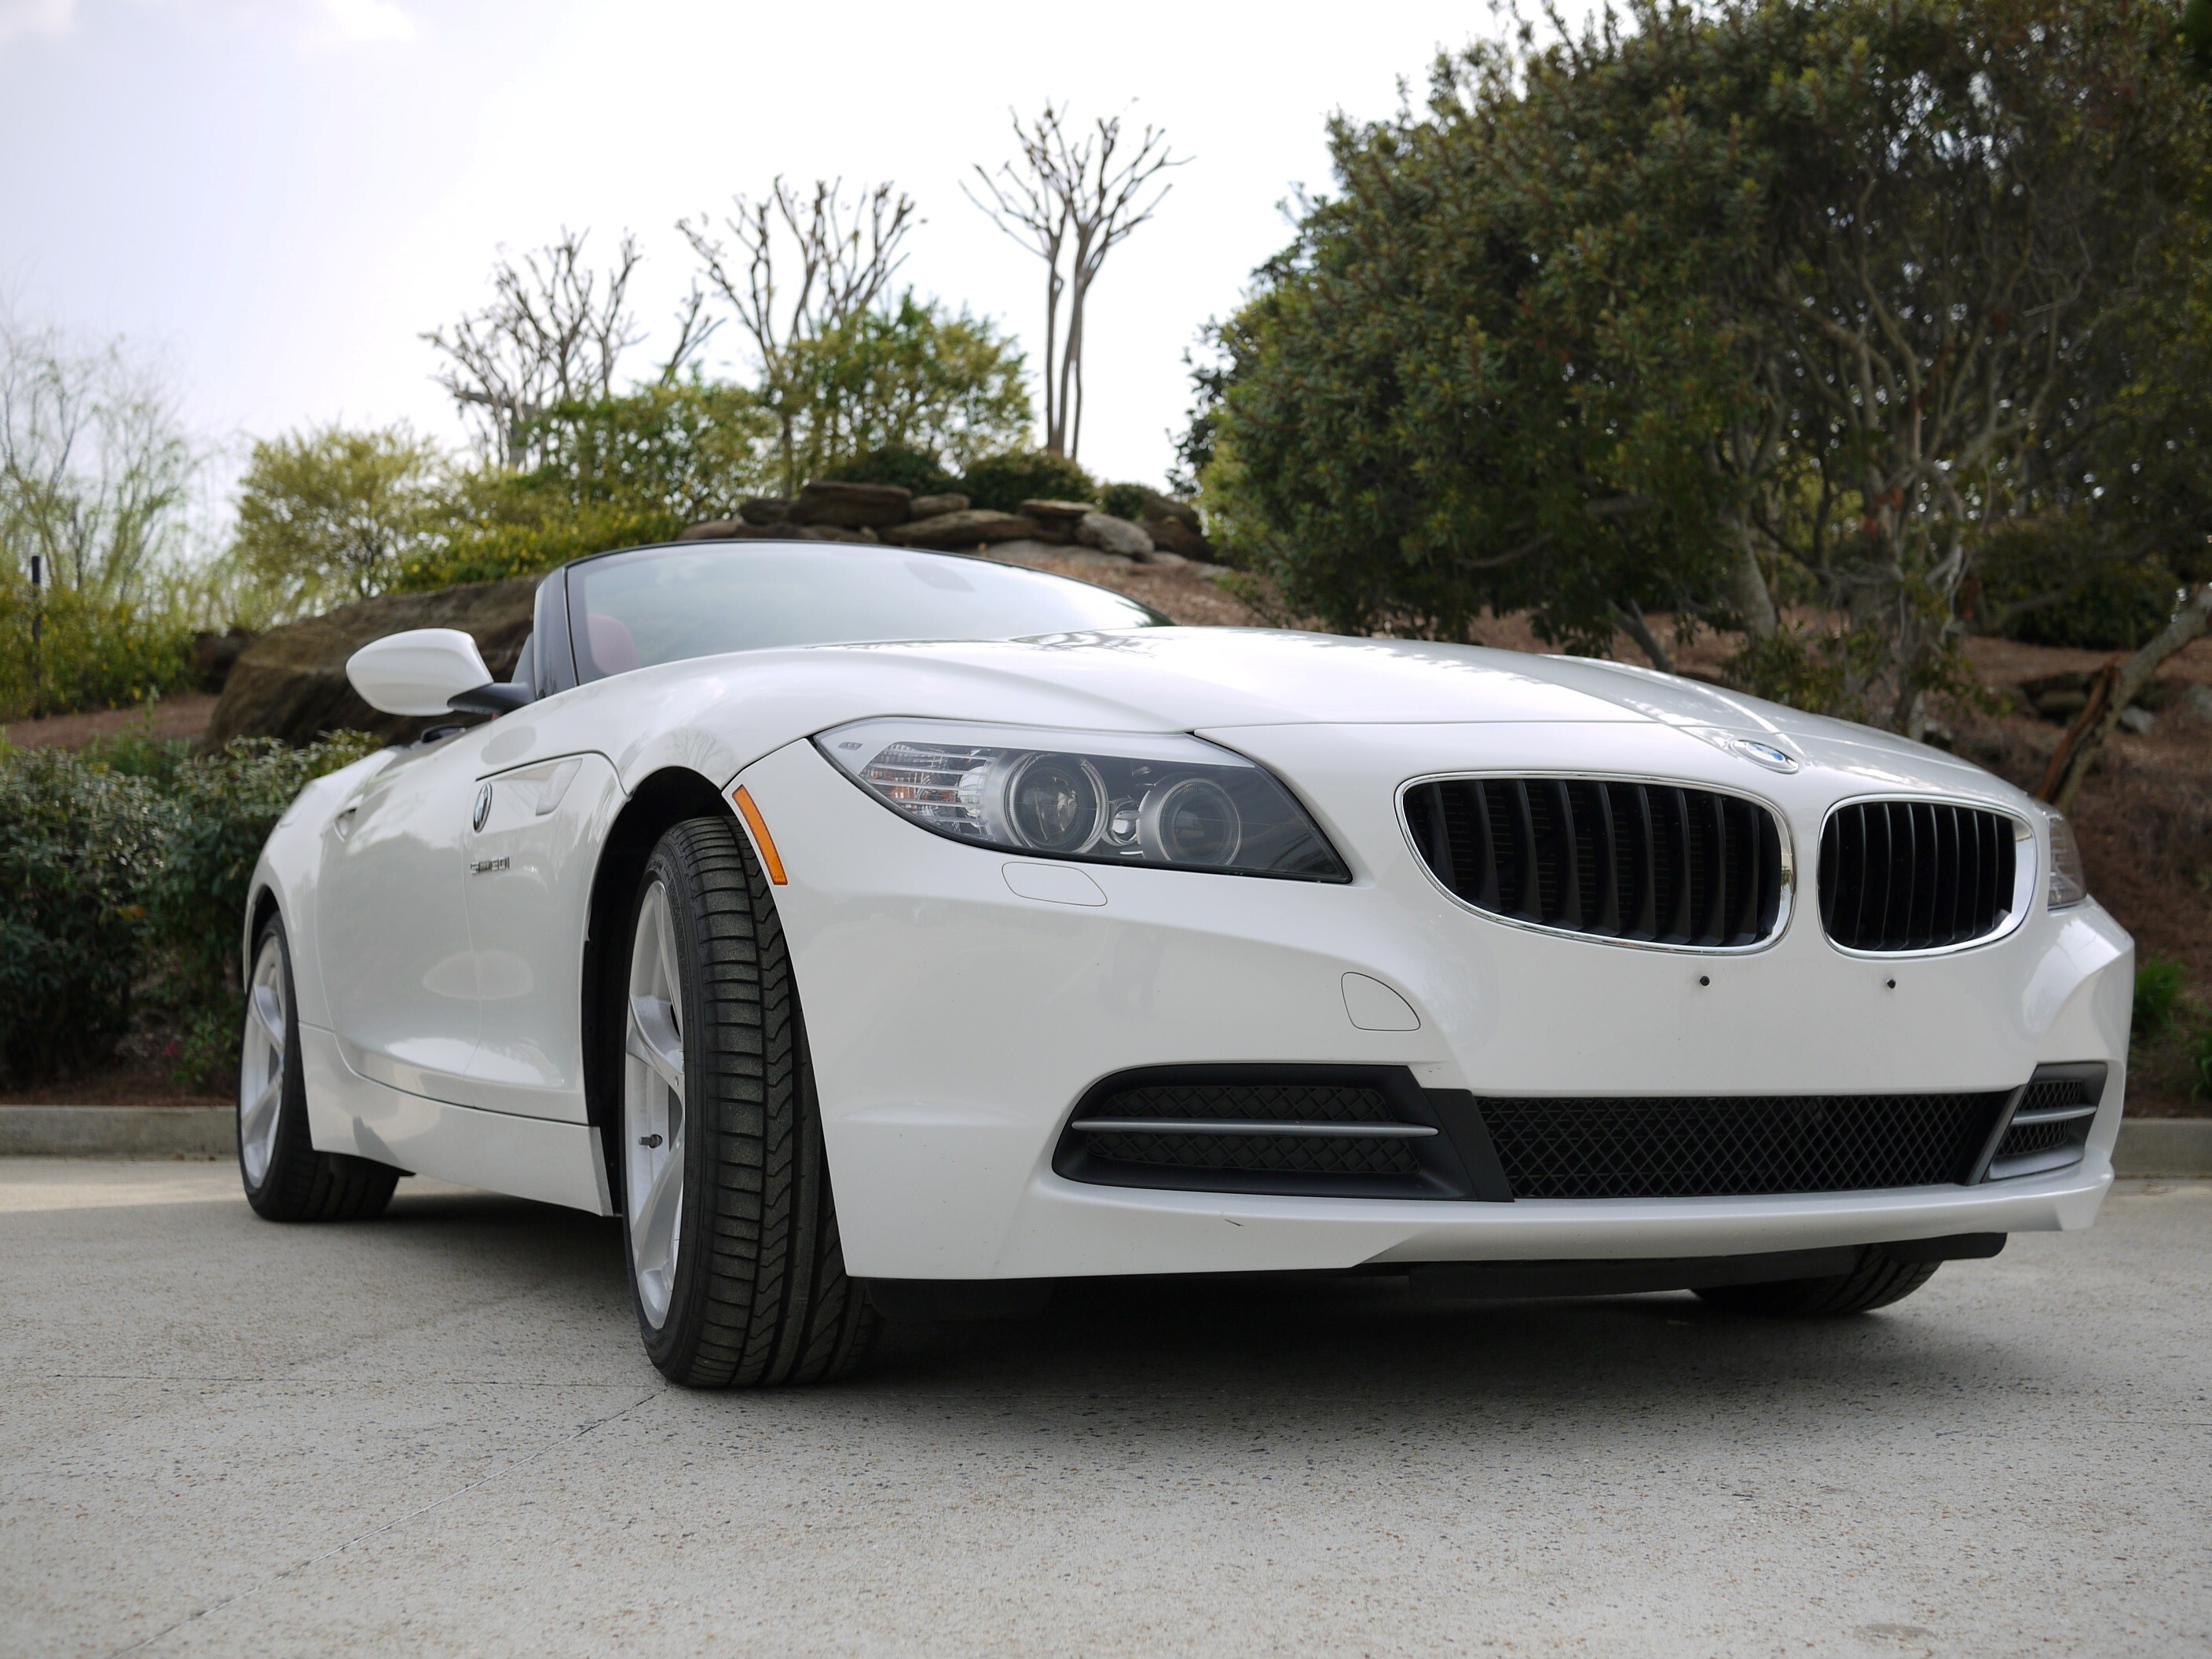 New white e89 bmw z4 sporty and topless car wallpapers download new white e89 bmw z4 sporty and topless car wallpapers download voltagebd Images